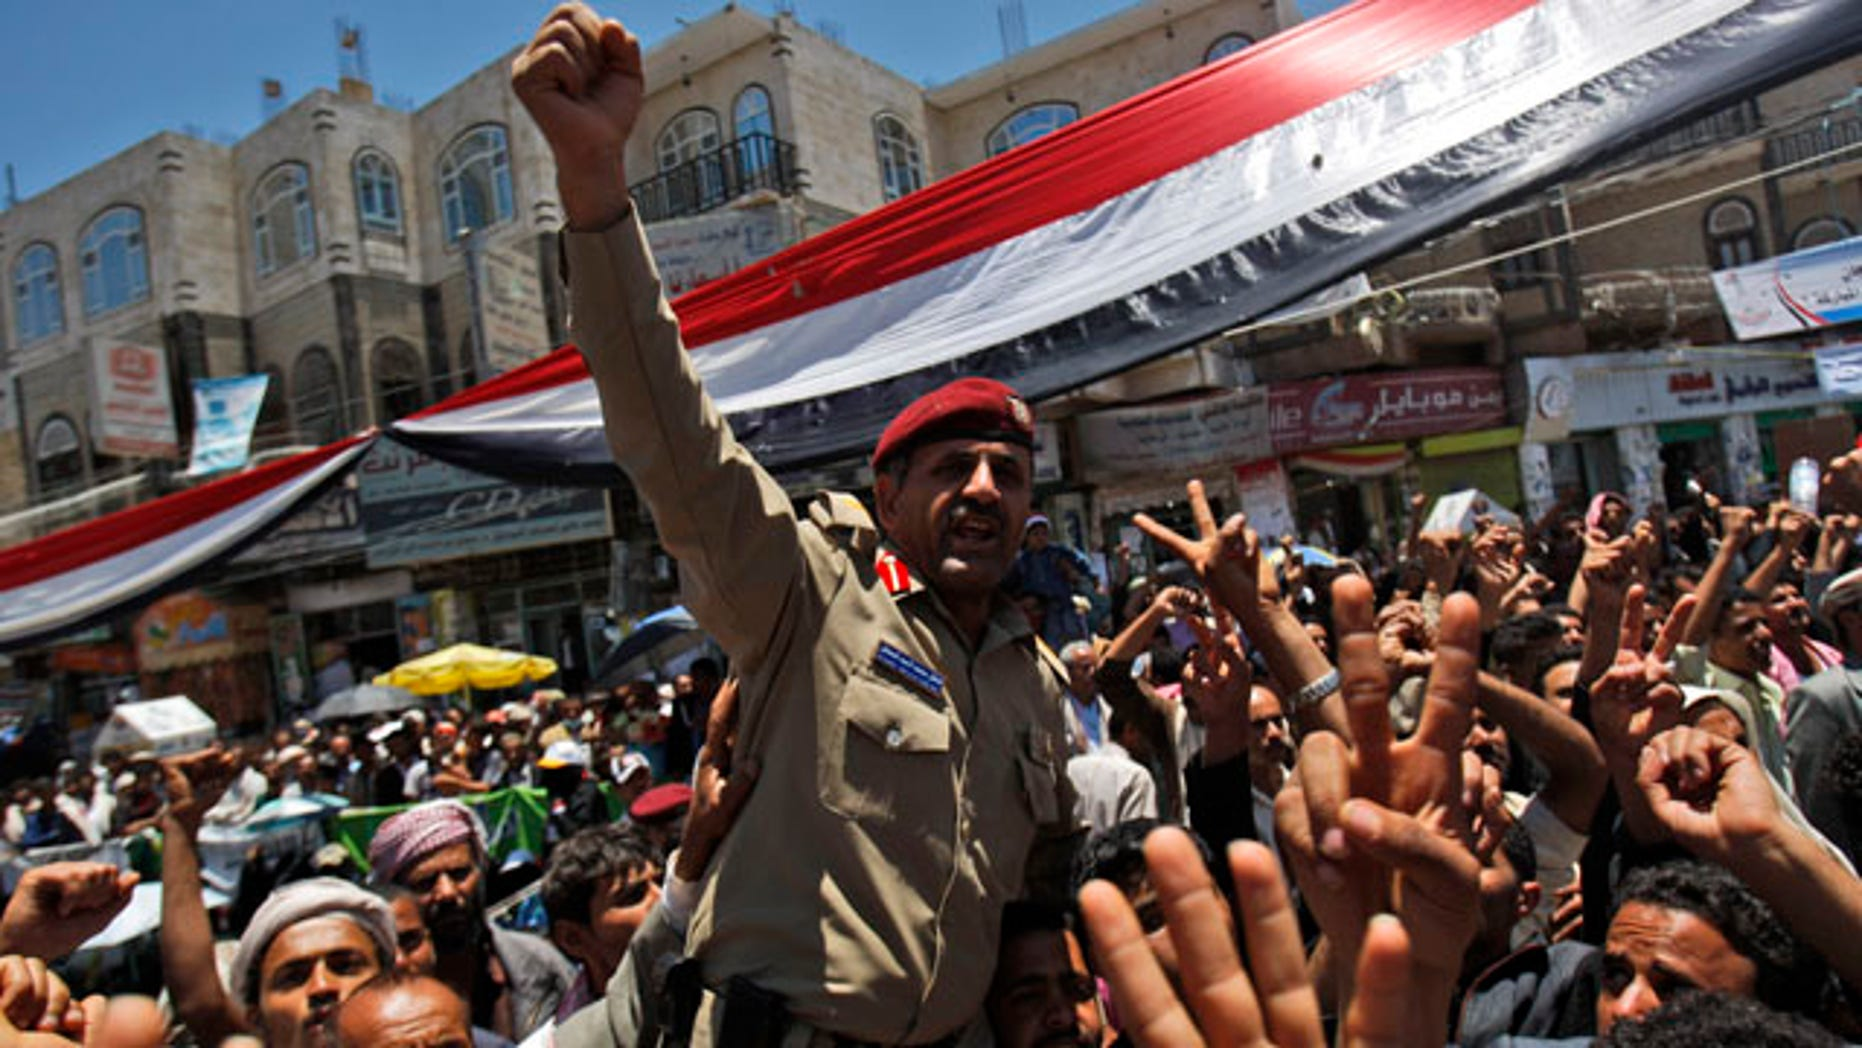 April 20: A Yemeni army officer lifted by anti-government protestors reacts during a demonstration demanding the resignation of Yemeni President Ali Abdullah Saleh in Sanaa, Yemen.